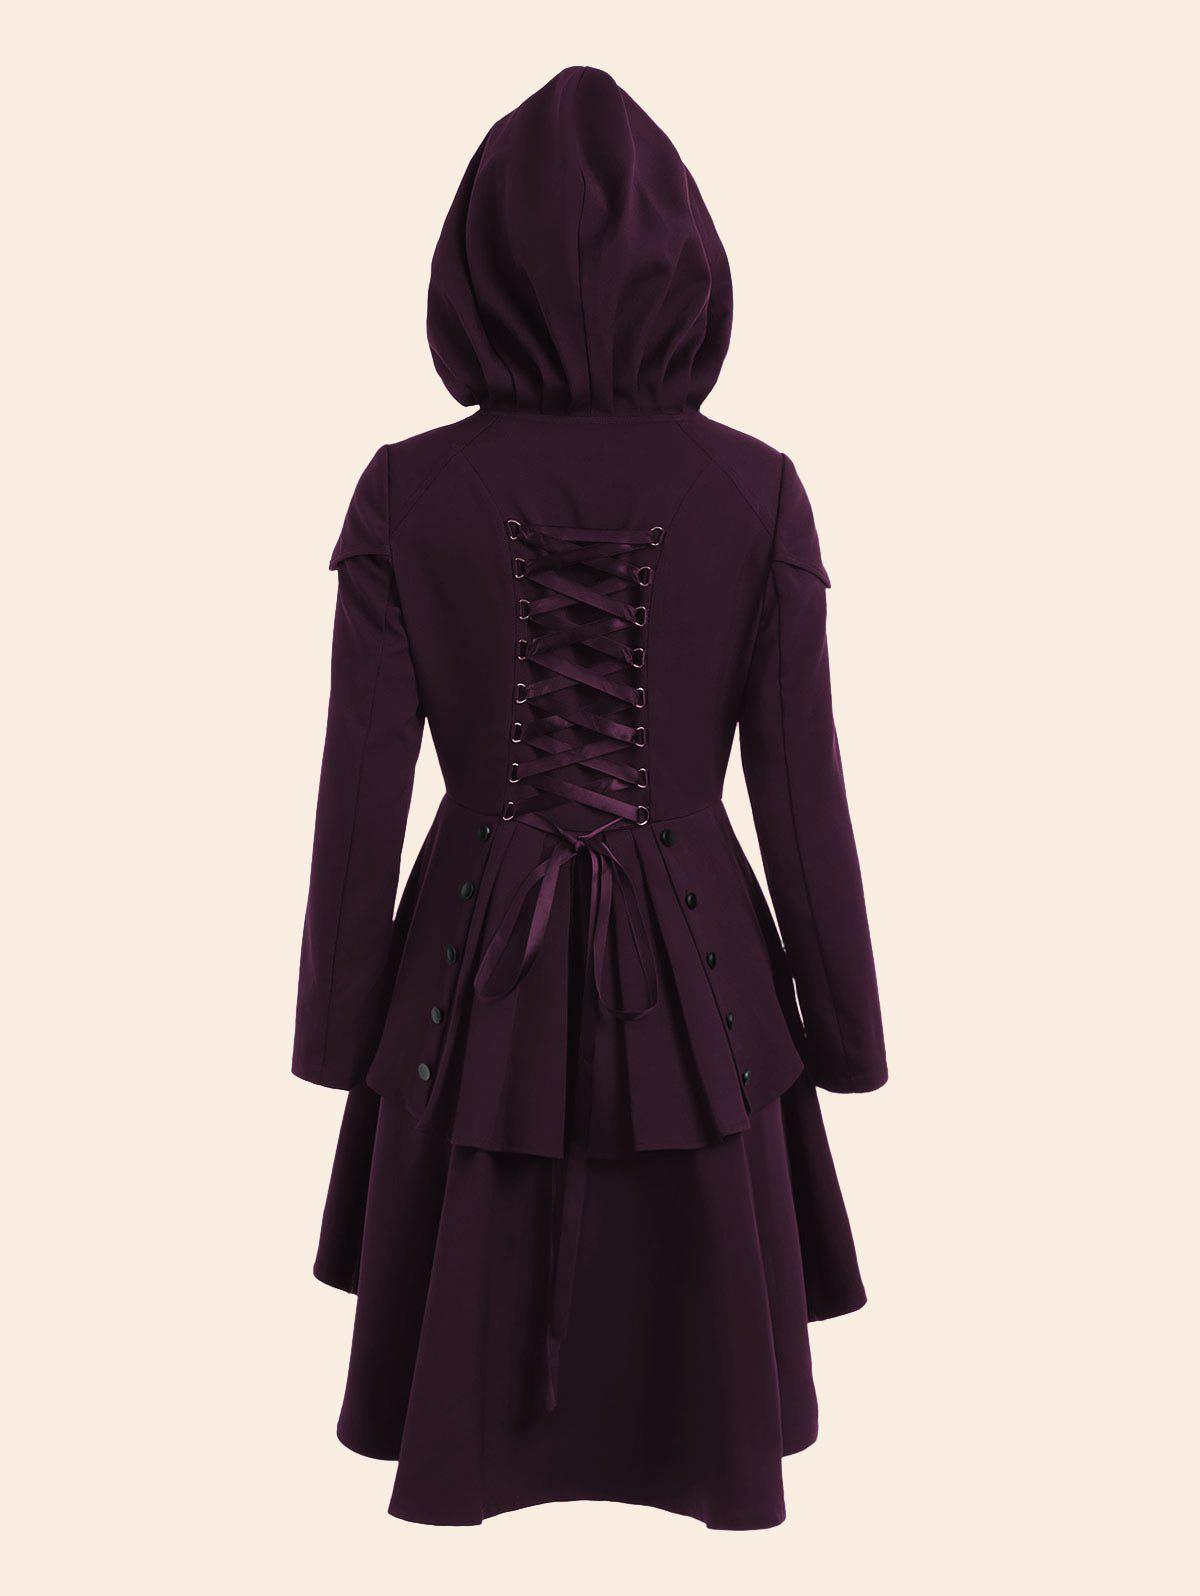 Lace Up High Low Plus Size Hooded CoatWOMEN<br><br>Size: 4XL; Color: PURPLISH RED; Clothes Type: Others; Material: Polyester; Type: High Waist; Shirt Length: Regular; Sleeve Length: Full; Collar: Hooded; Closure Type: Single Breasted; Pattern Type: Solid; Embellishment: Criss-Cross; Style: Gothic; Season: Fall,Spring; With Belt: No; Weight: 0.7500kg; Package Contents: 1 x Coat;